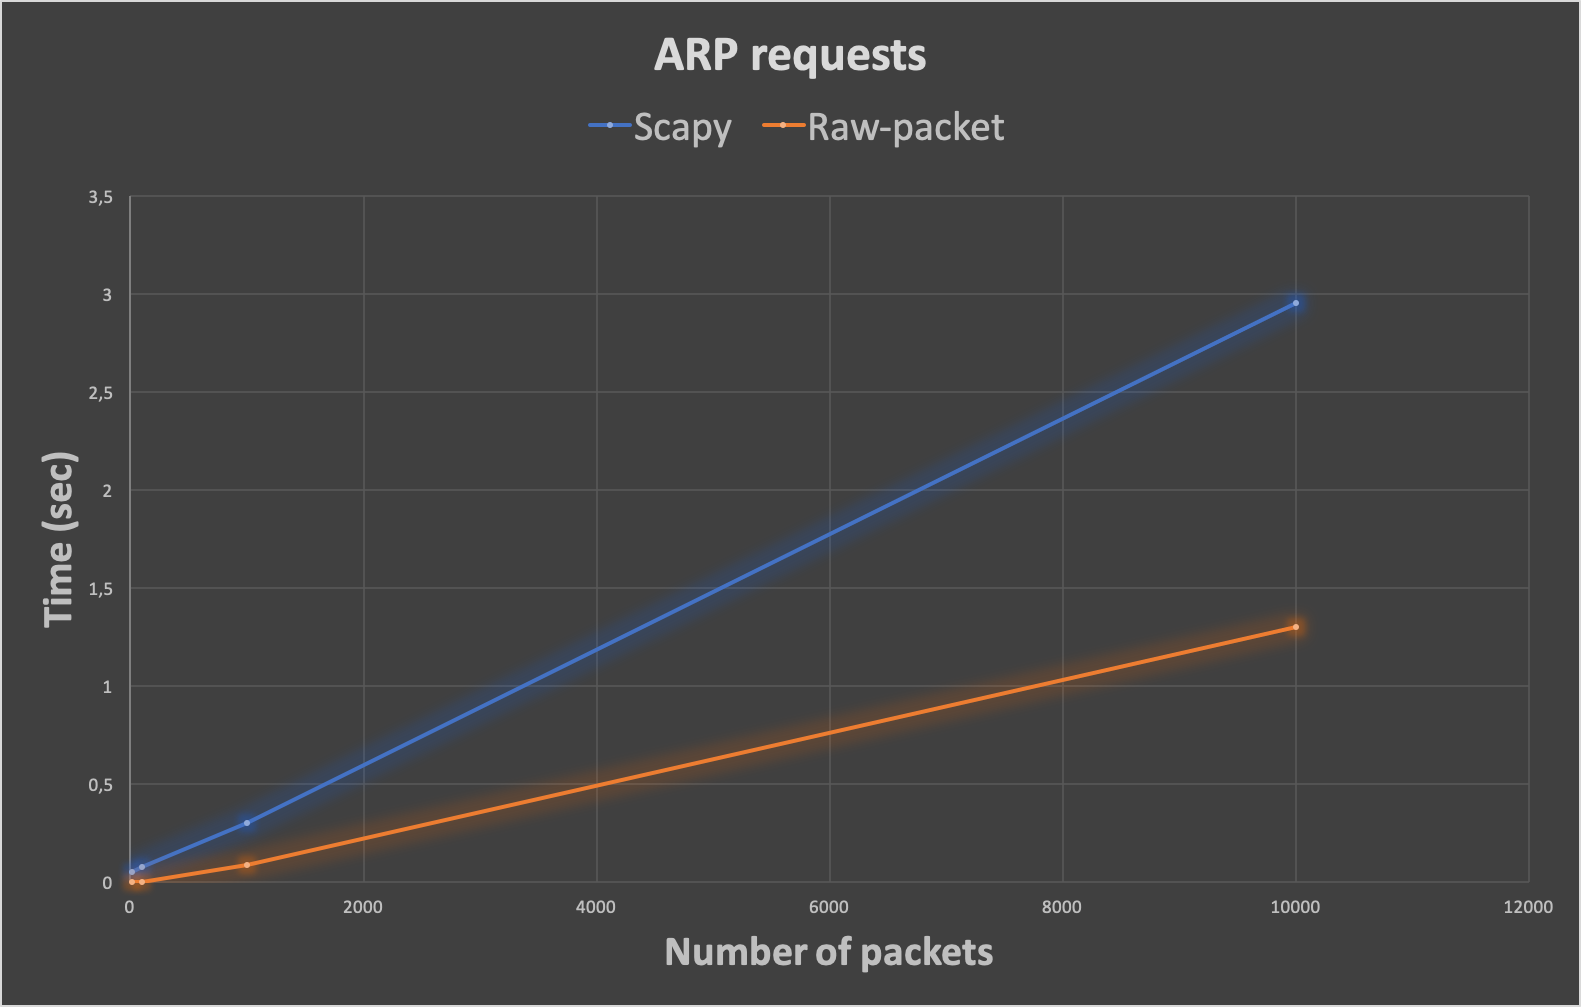 Scapy vs. Raw-packet ARP requests